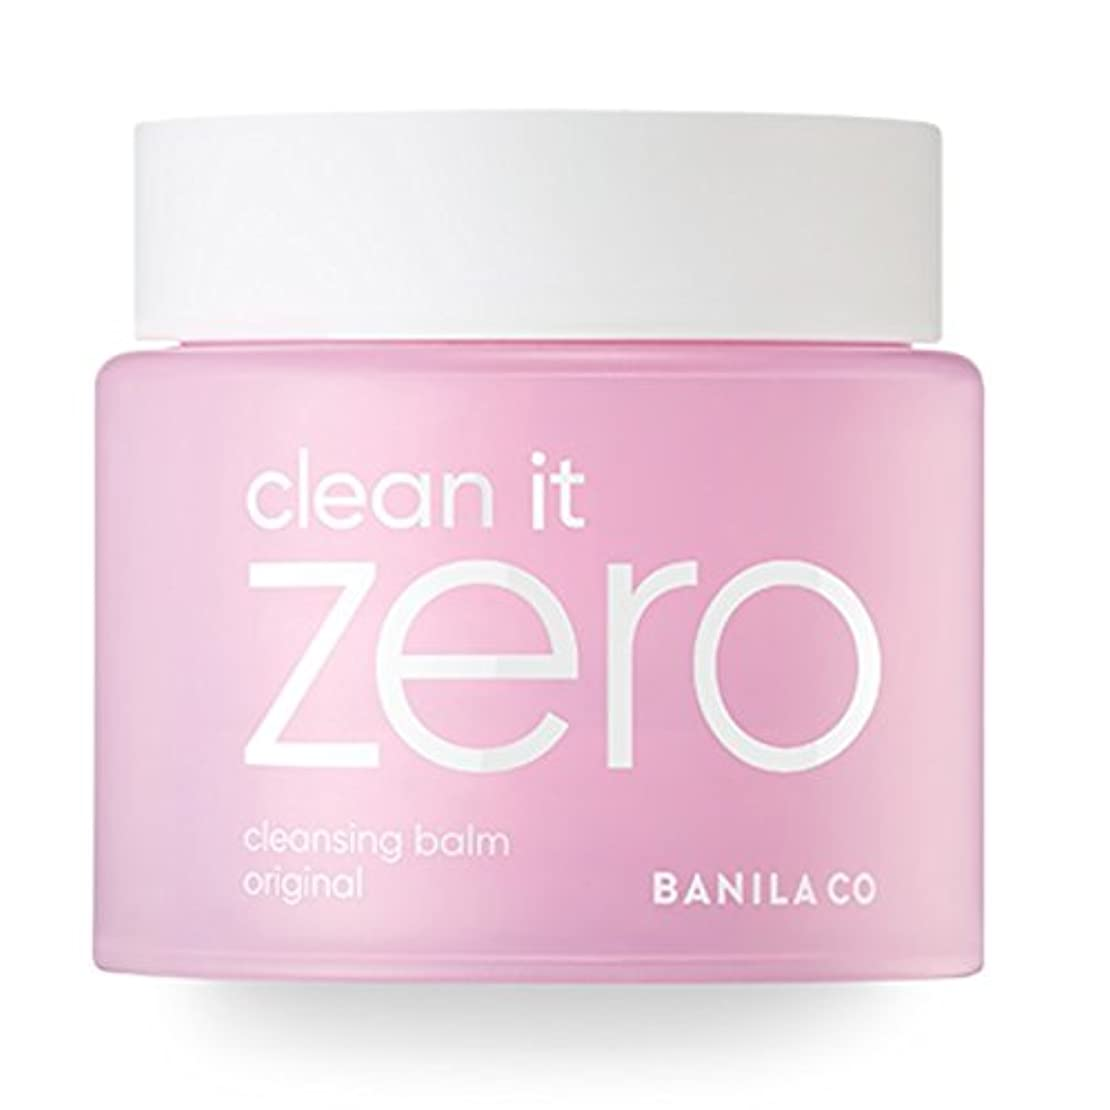 ページェント屈辱するポルティコ[banila co.] Clean It Zero 100ml (sherbet cleanser) (Clean It Zero Ultra Size 180ml (Original))